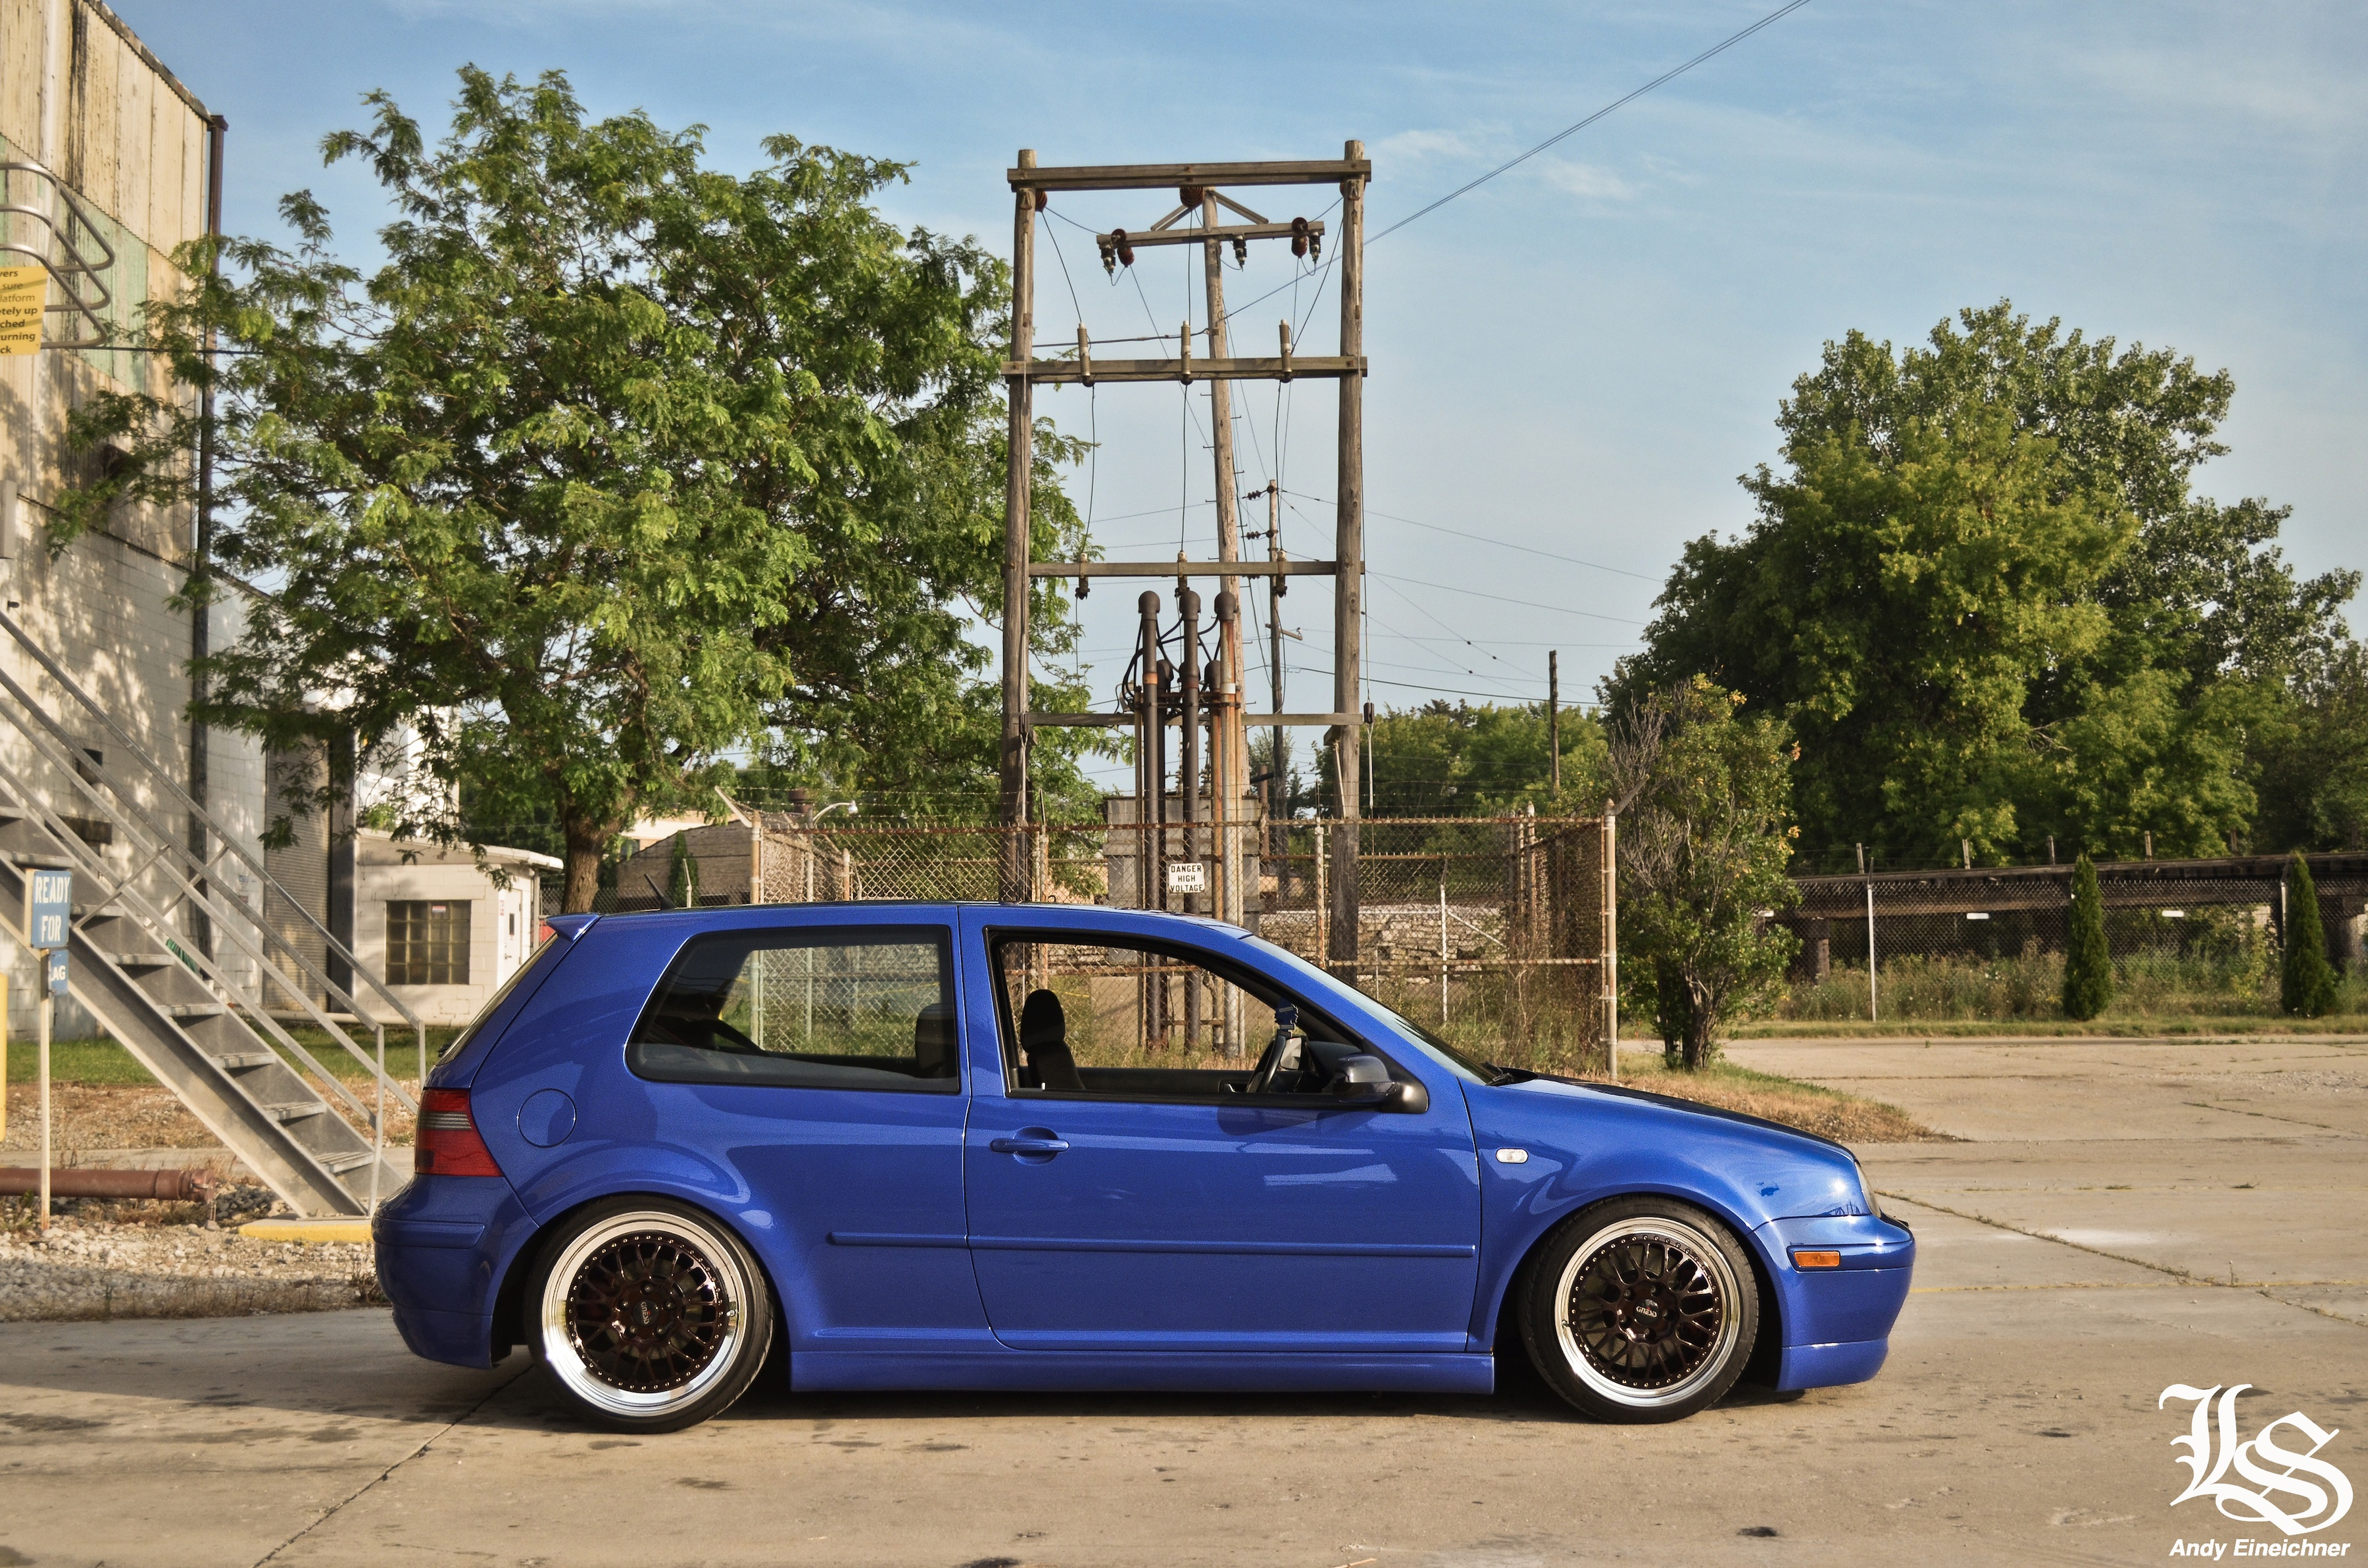 Lowfile dylan chartier s th anniversary gti lower standards